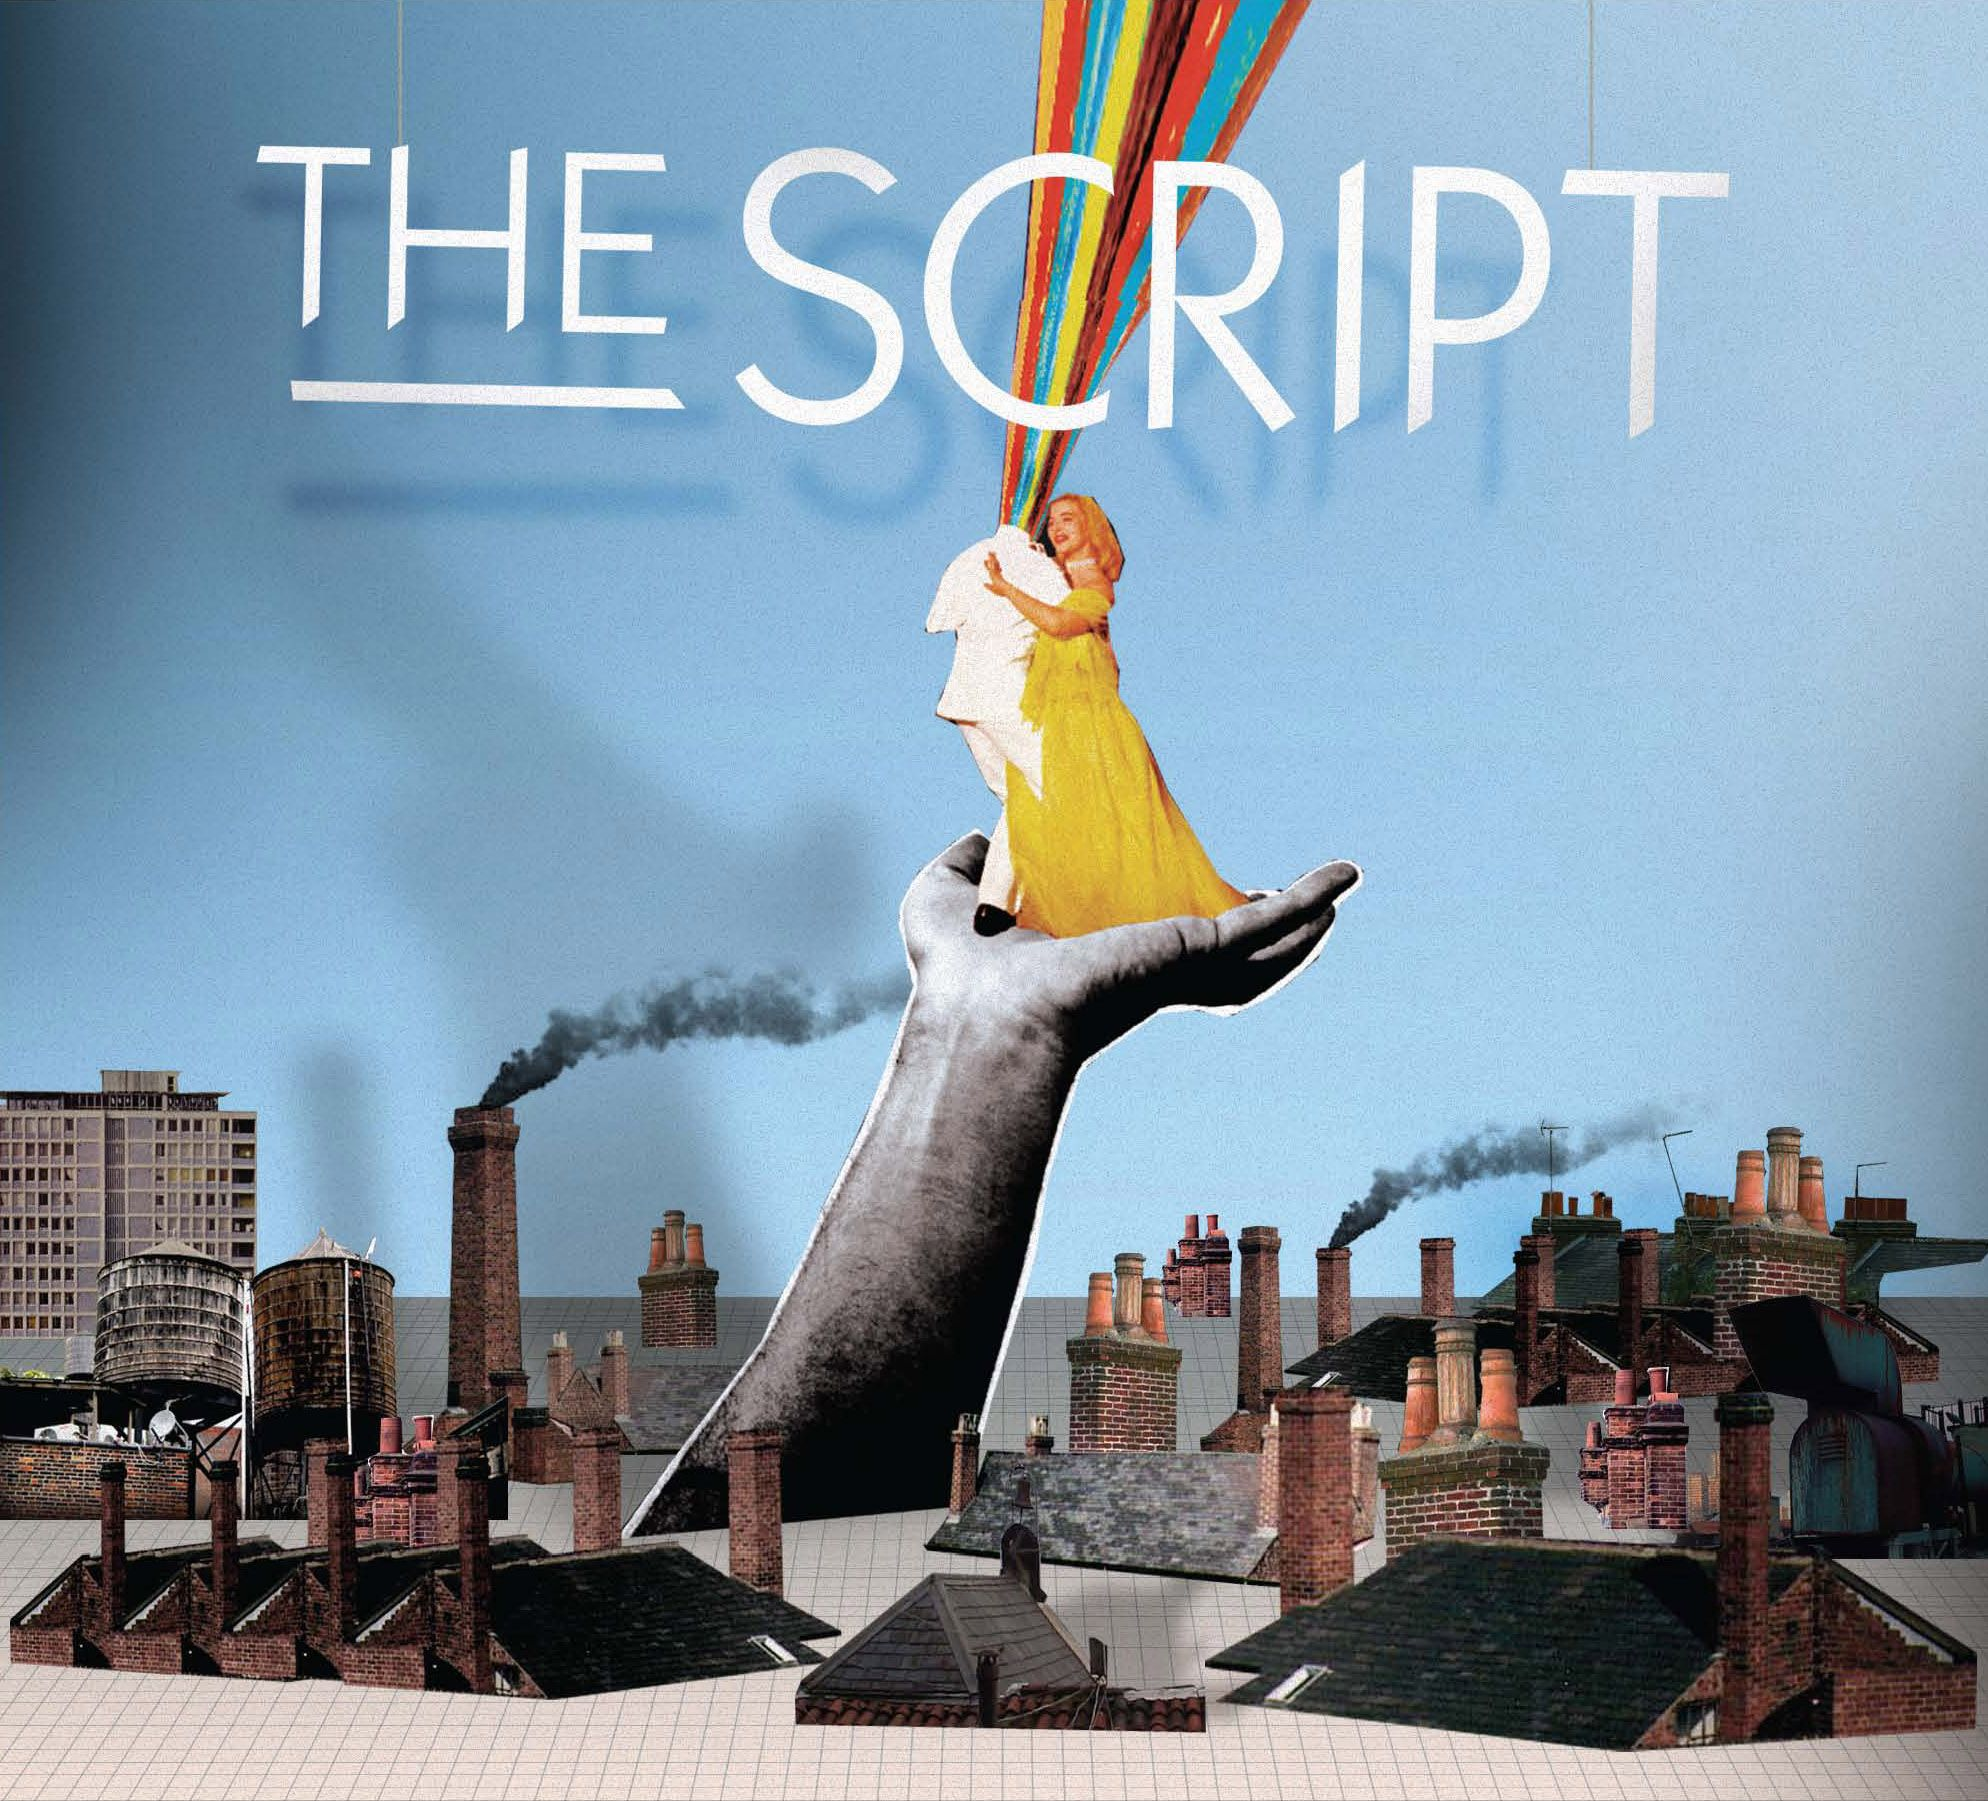 The Script - The Script album cover